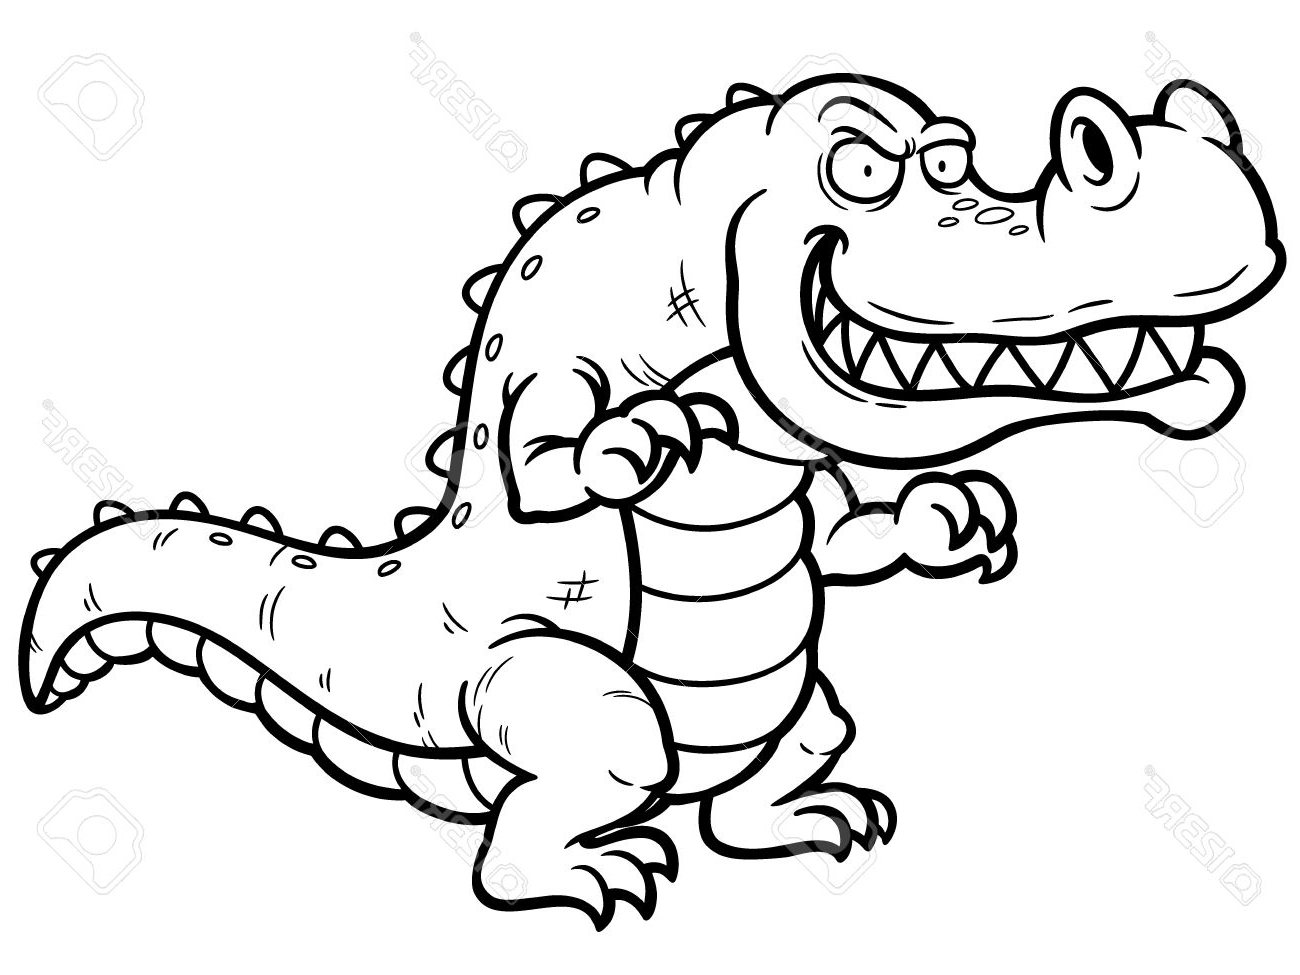 1300x975 Crocodile How To Draw A Crocodile Cartoon Easy Sketch Drawing